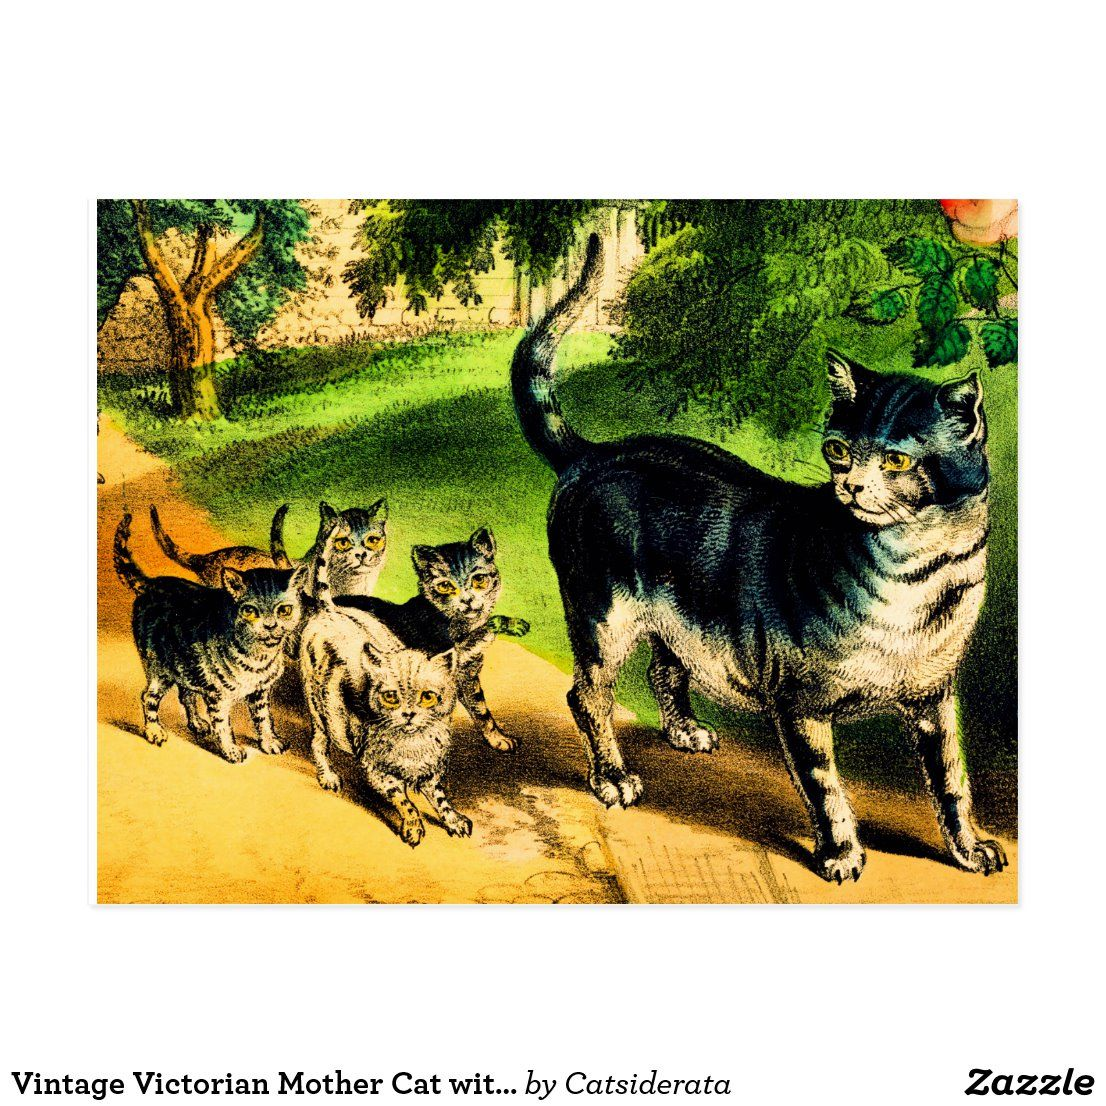 Vintage Victorian Mother Cat With Cute Kittens Postcard Zazzle Com In 2020 Kittens Cutest Mother Cat Kittens